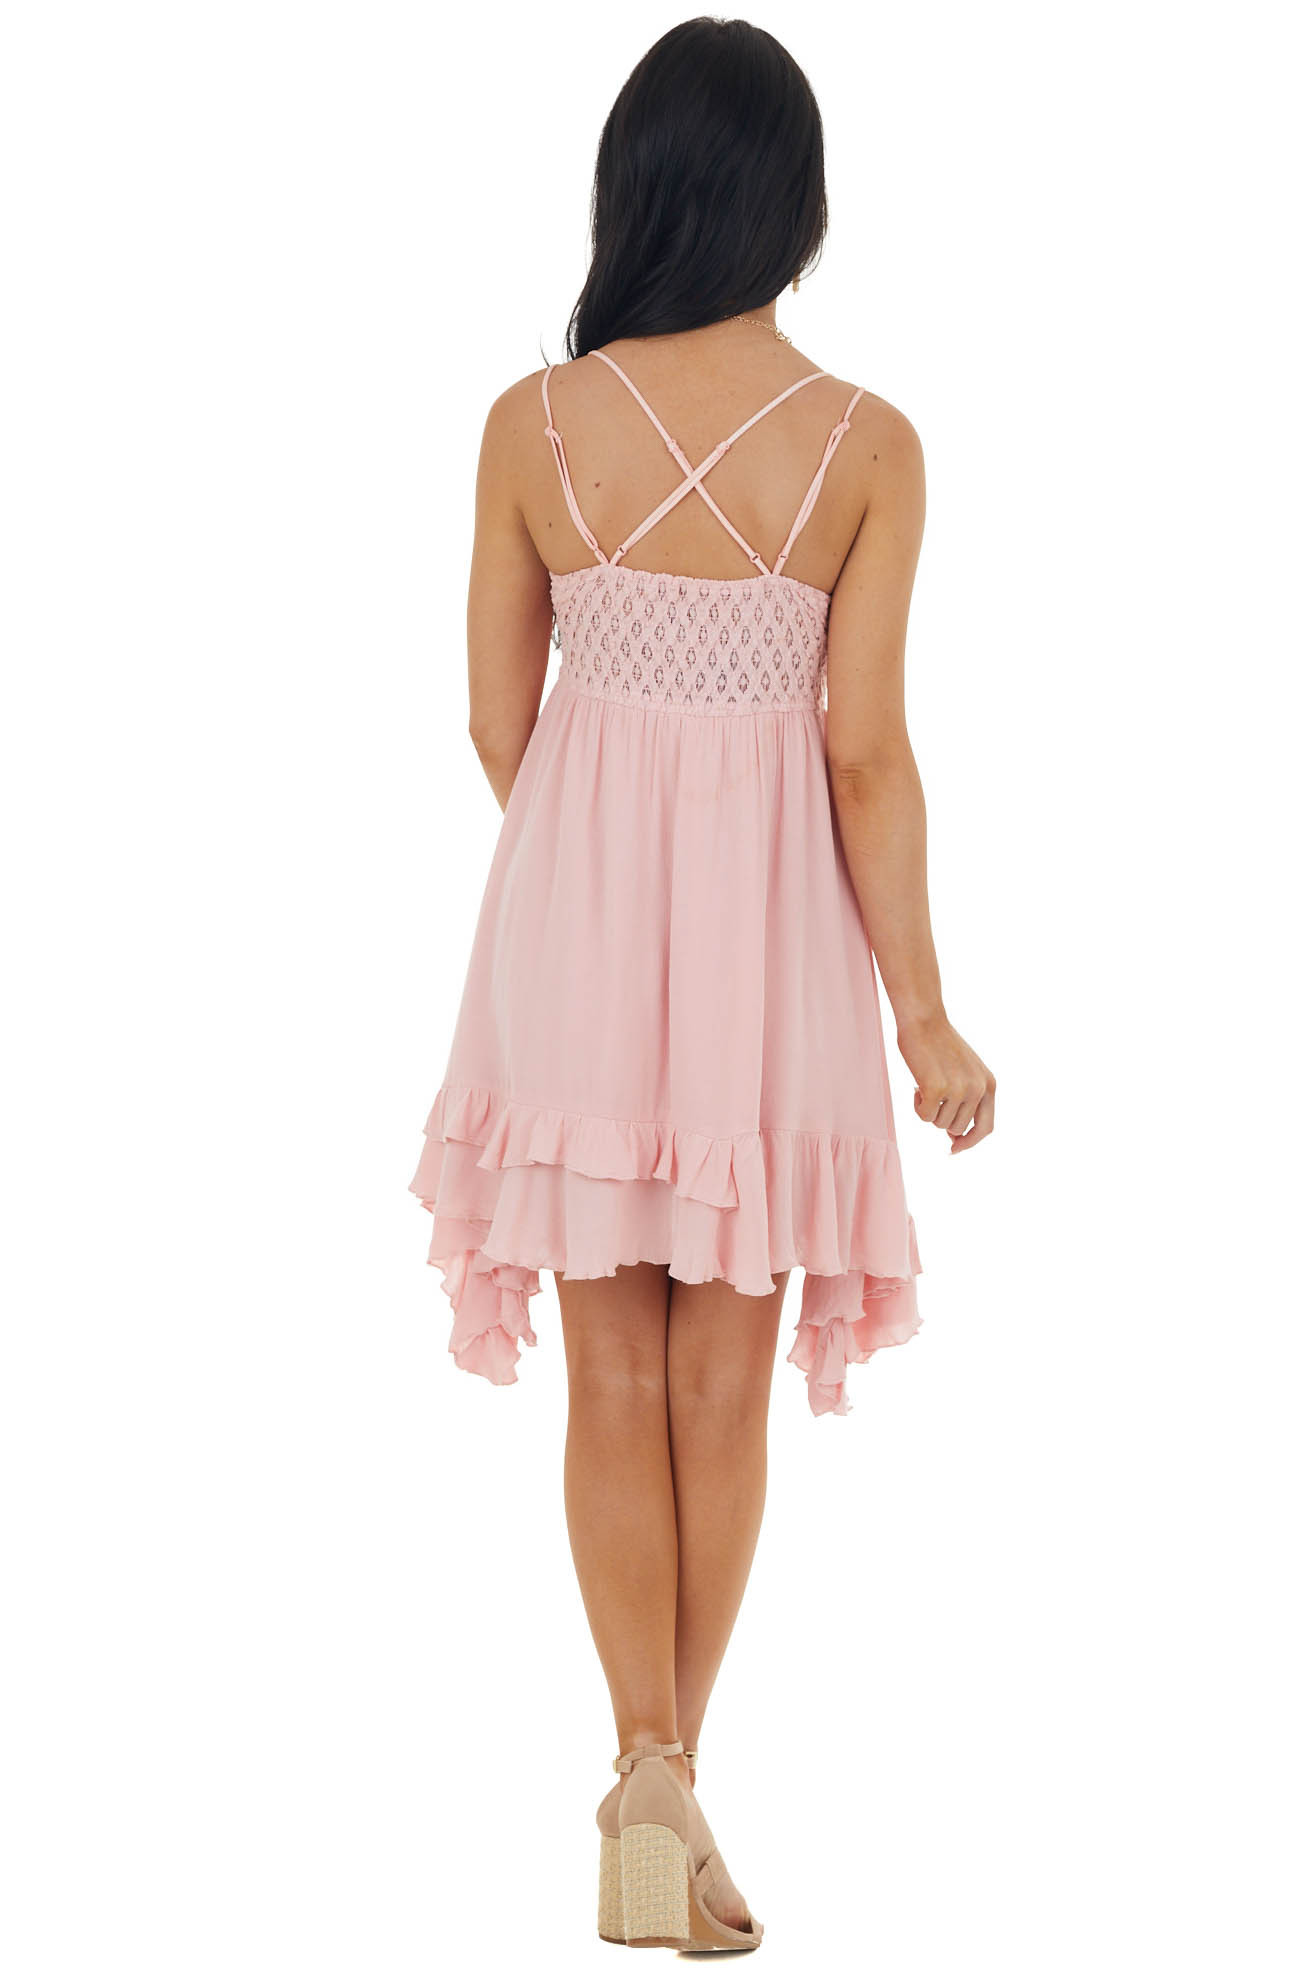 Cherry Blossom Sleeveless Dress with Crochet Lace Details